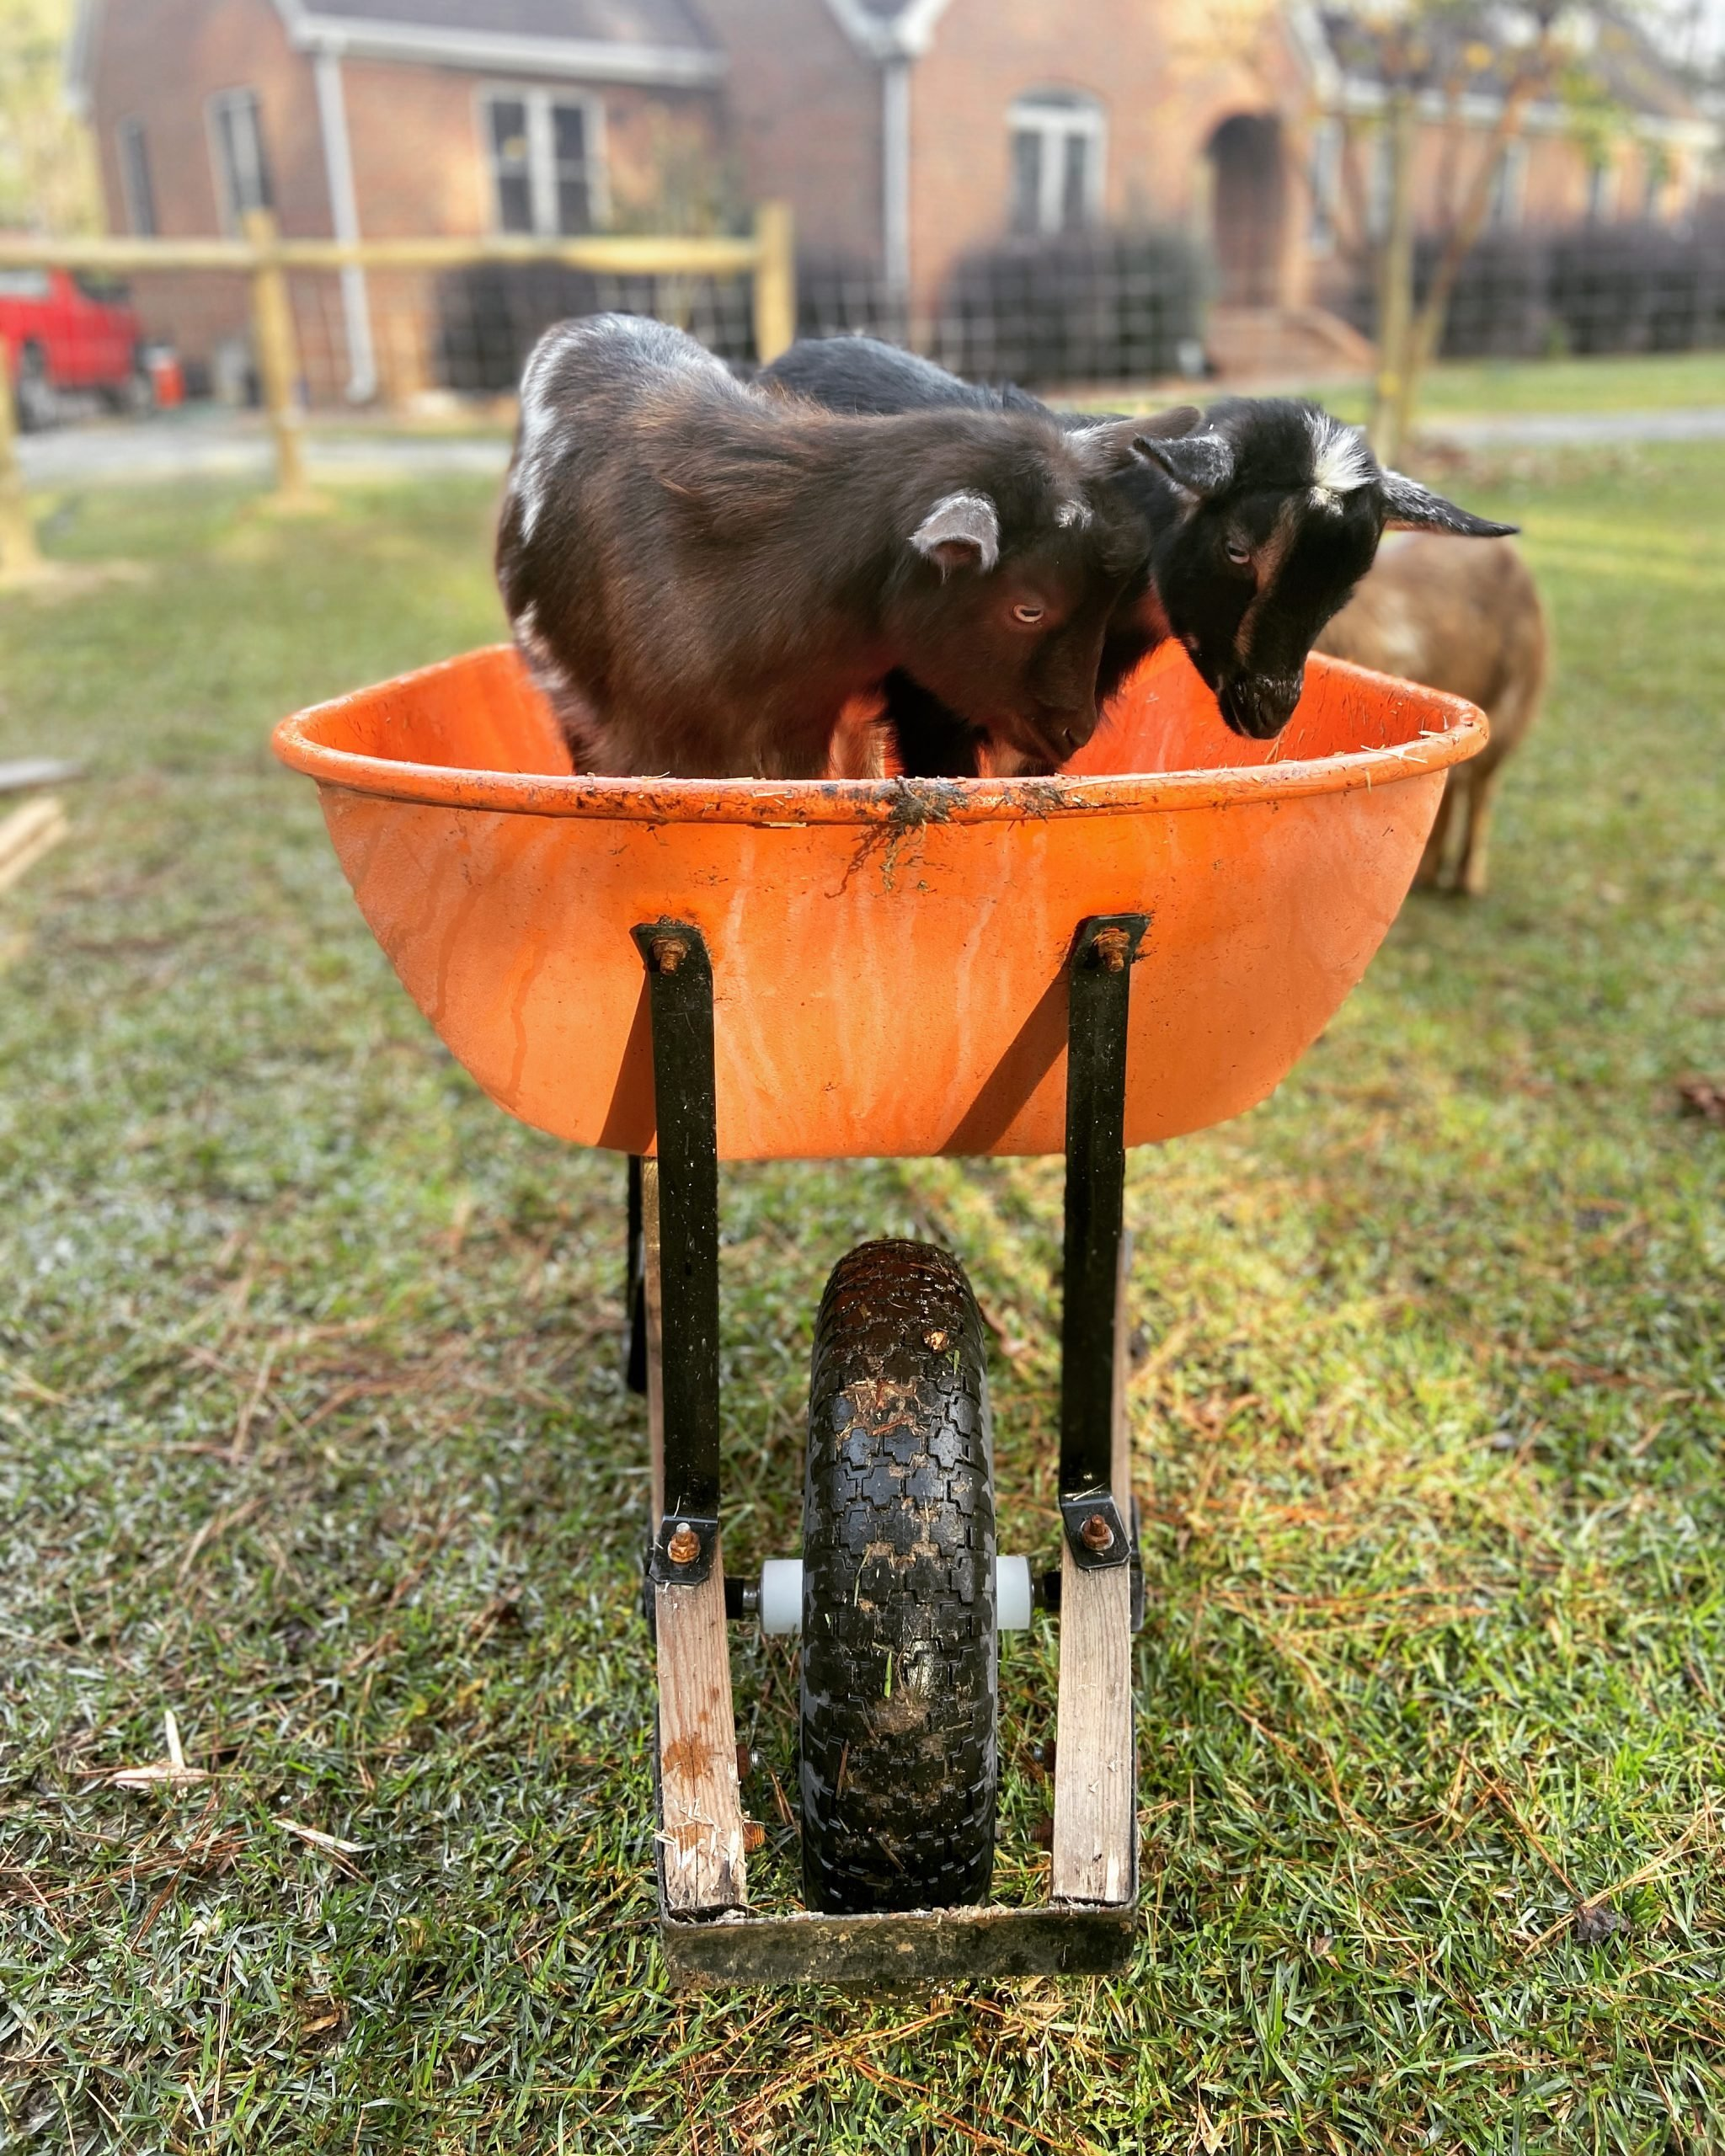 goat friends playing